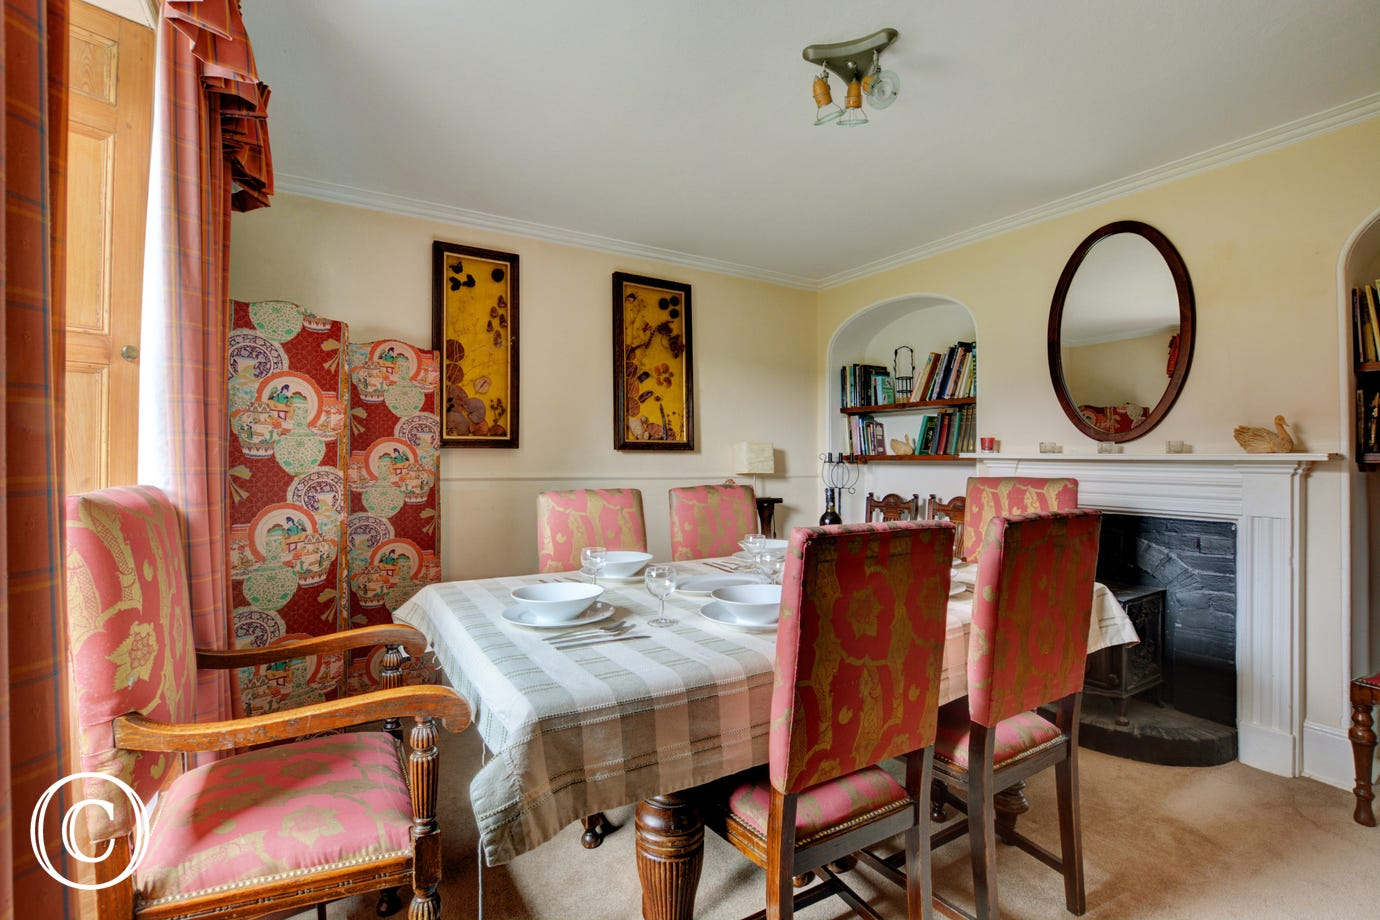 Traditionally furnished dining room with a table and chairs, ideal for more formal meals